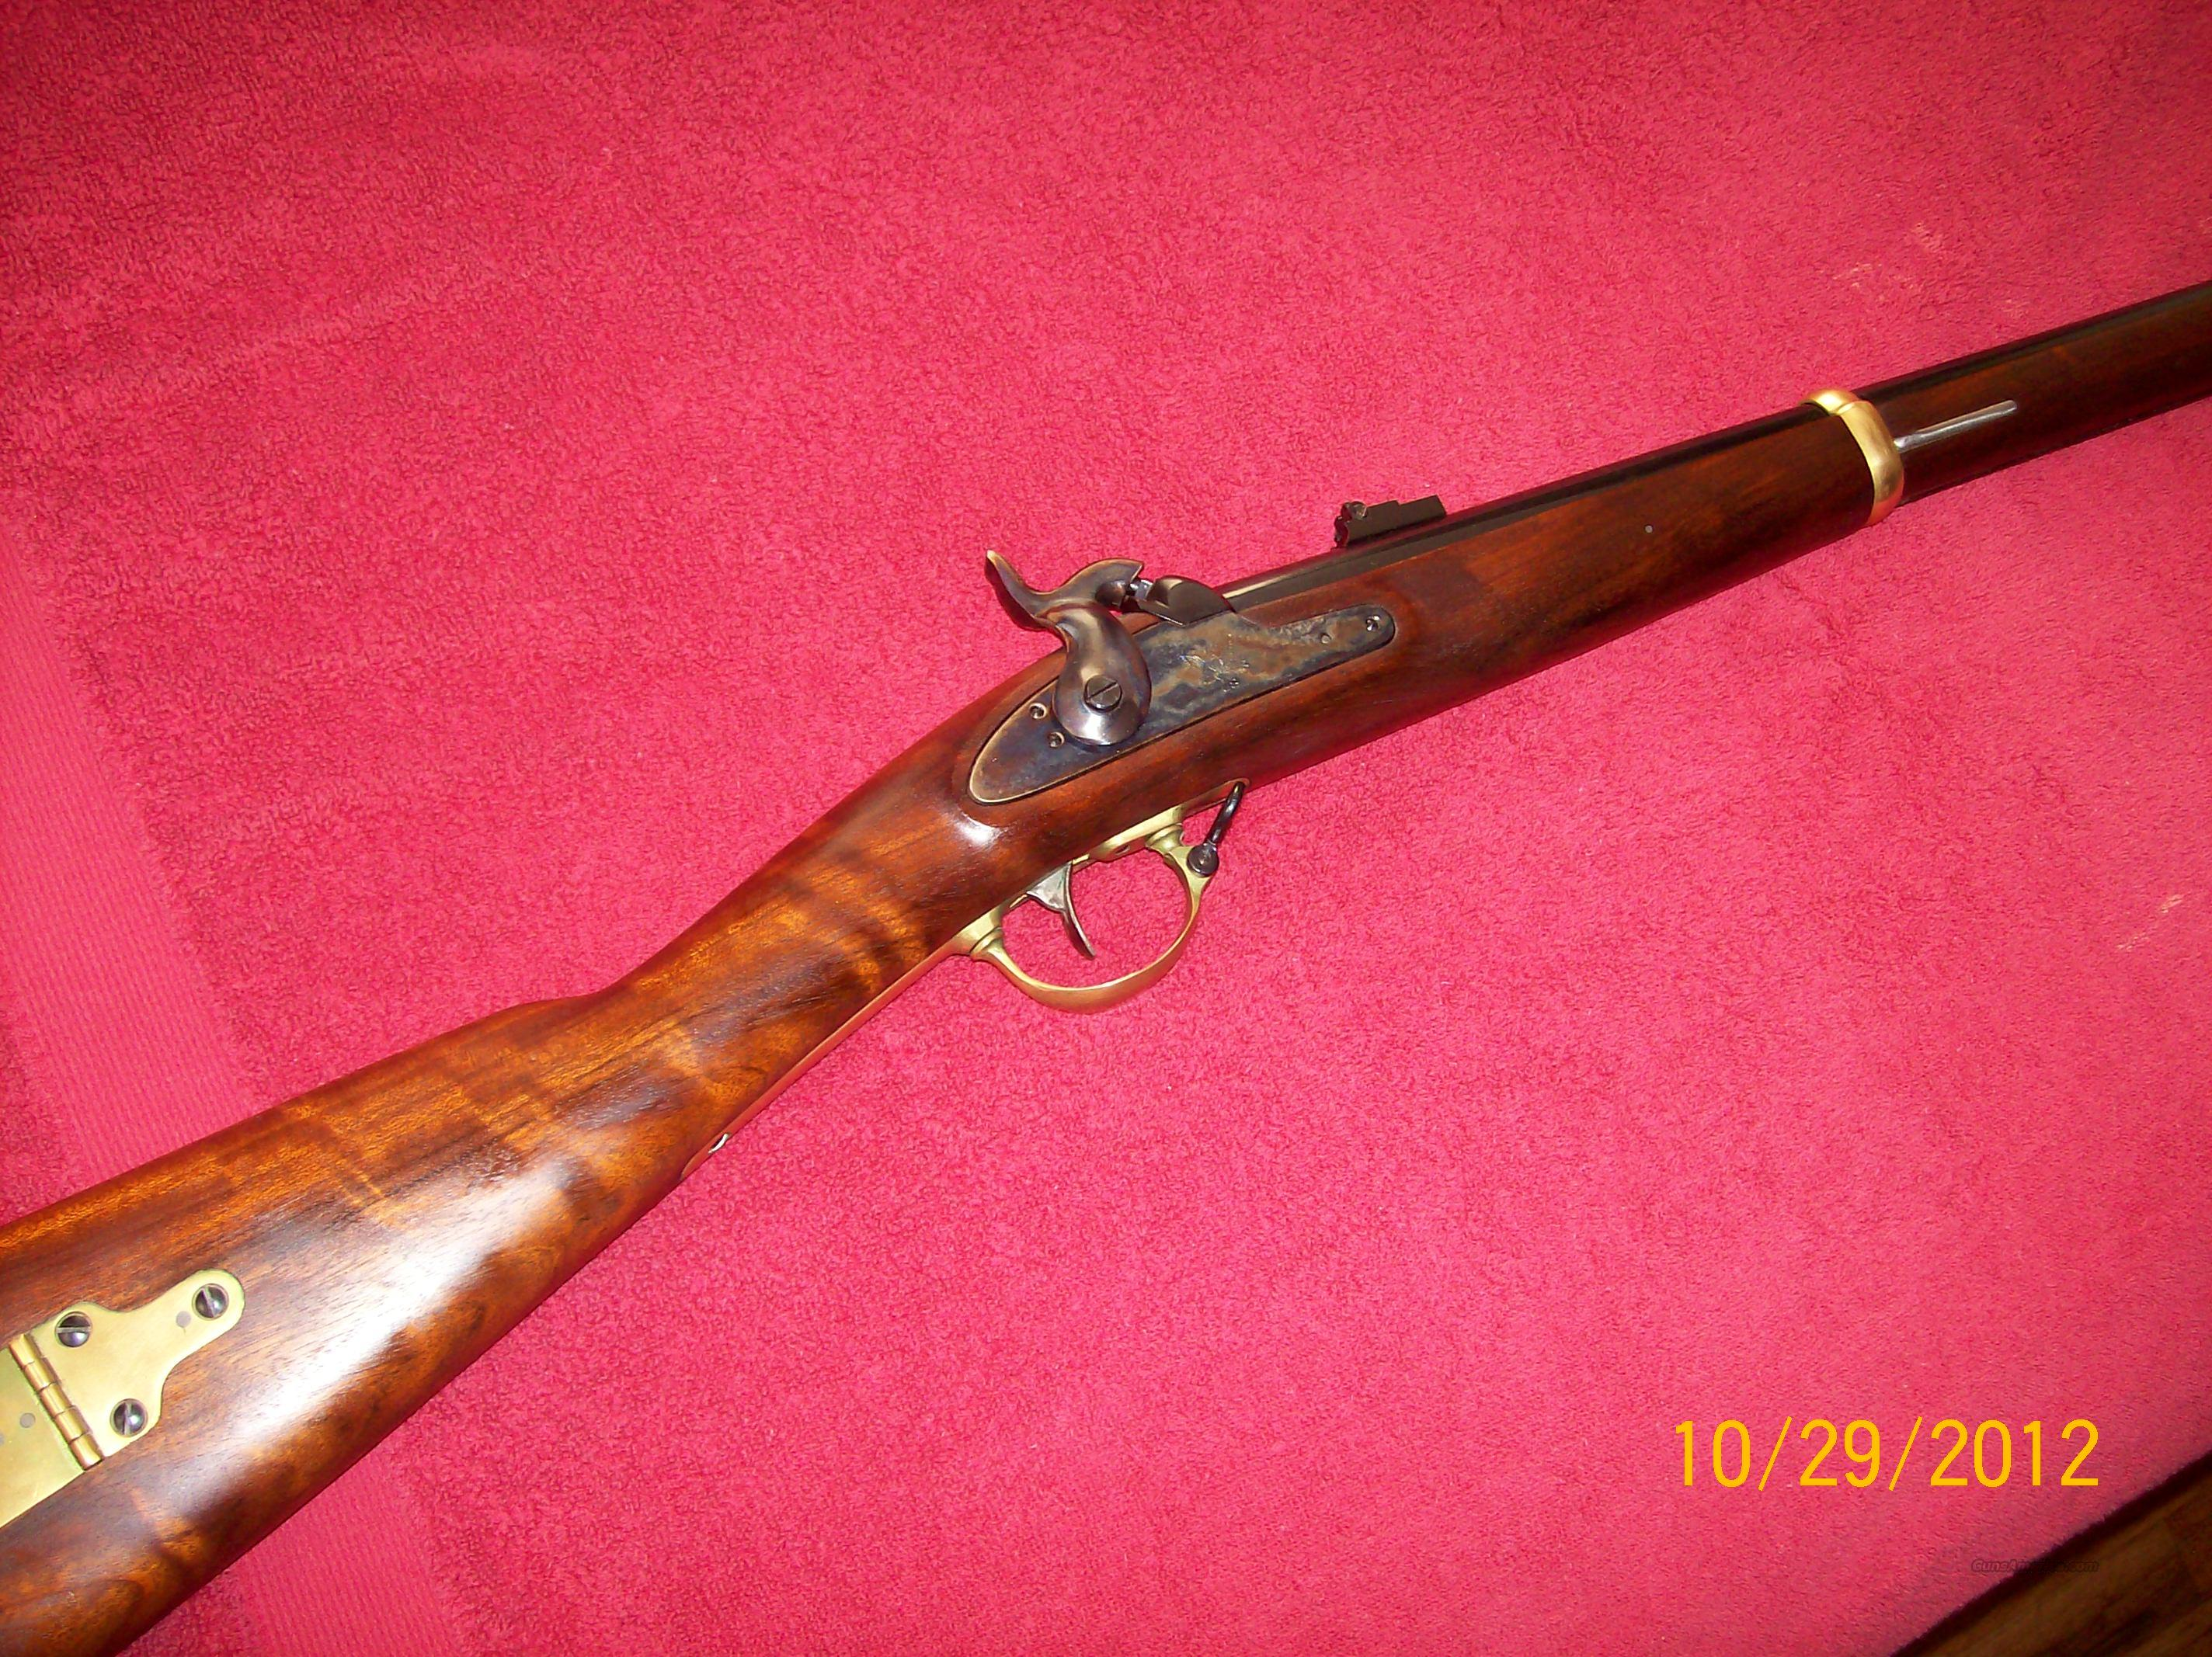 1863 Remington Zouave Reproduction .58 caliber  Guns > Rifles > Muzzleloading Modern & Replica Rifles (perc) > Replica Muzzleloaders